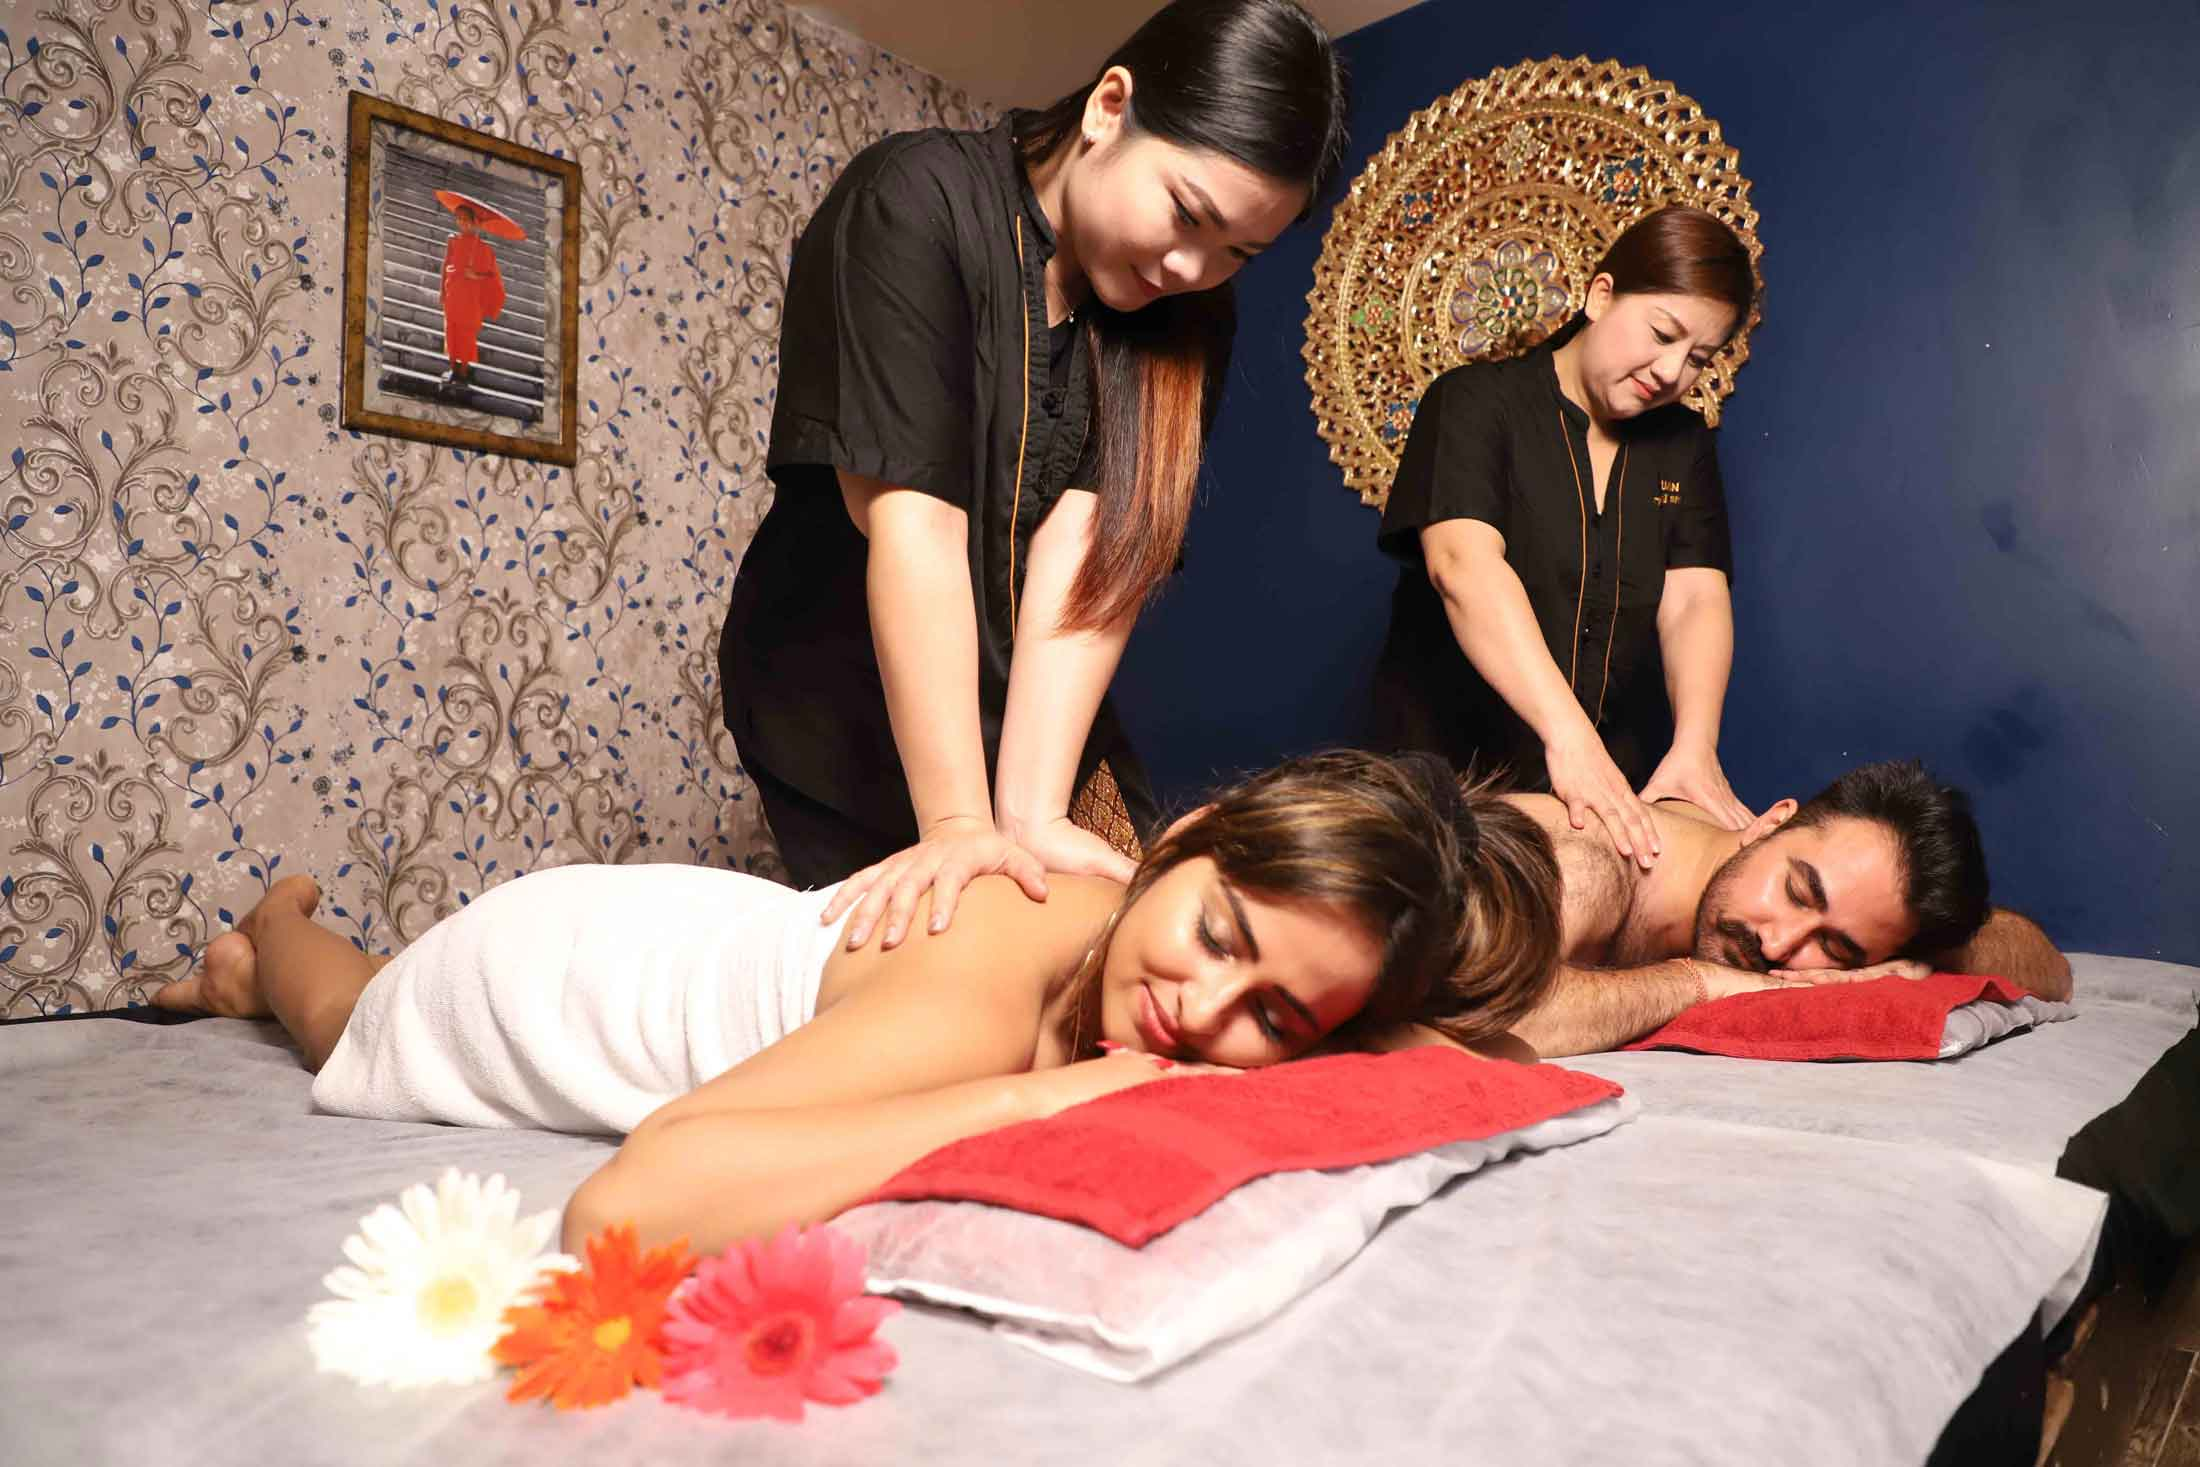 Couple Massage Yuan thai spa Mumbai